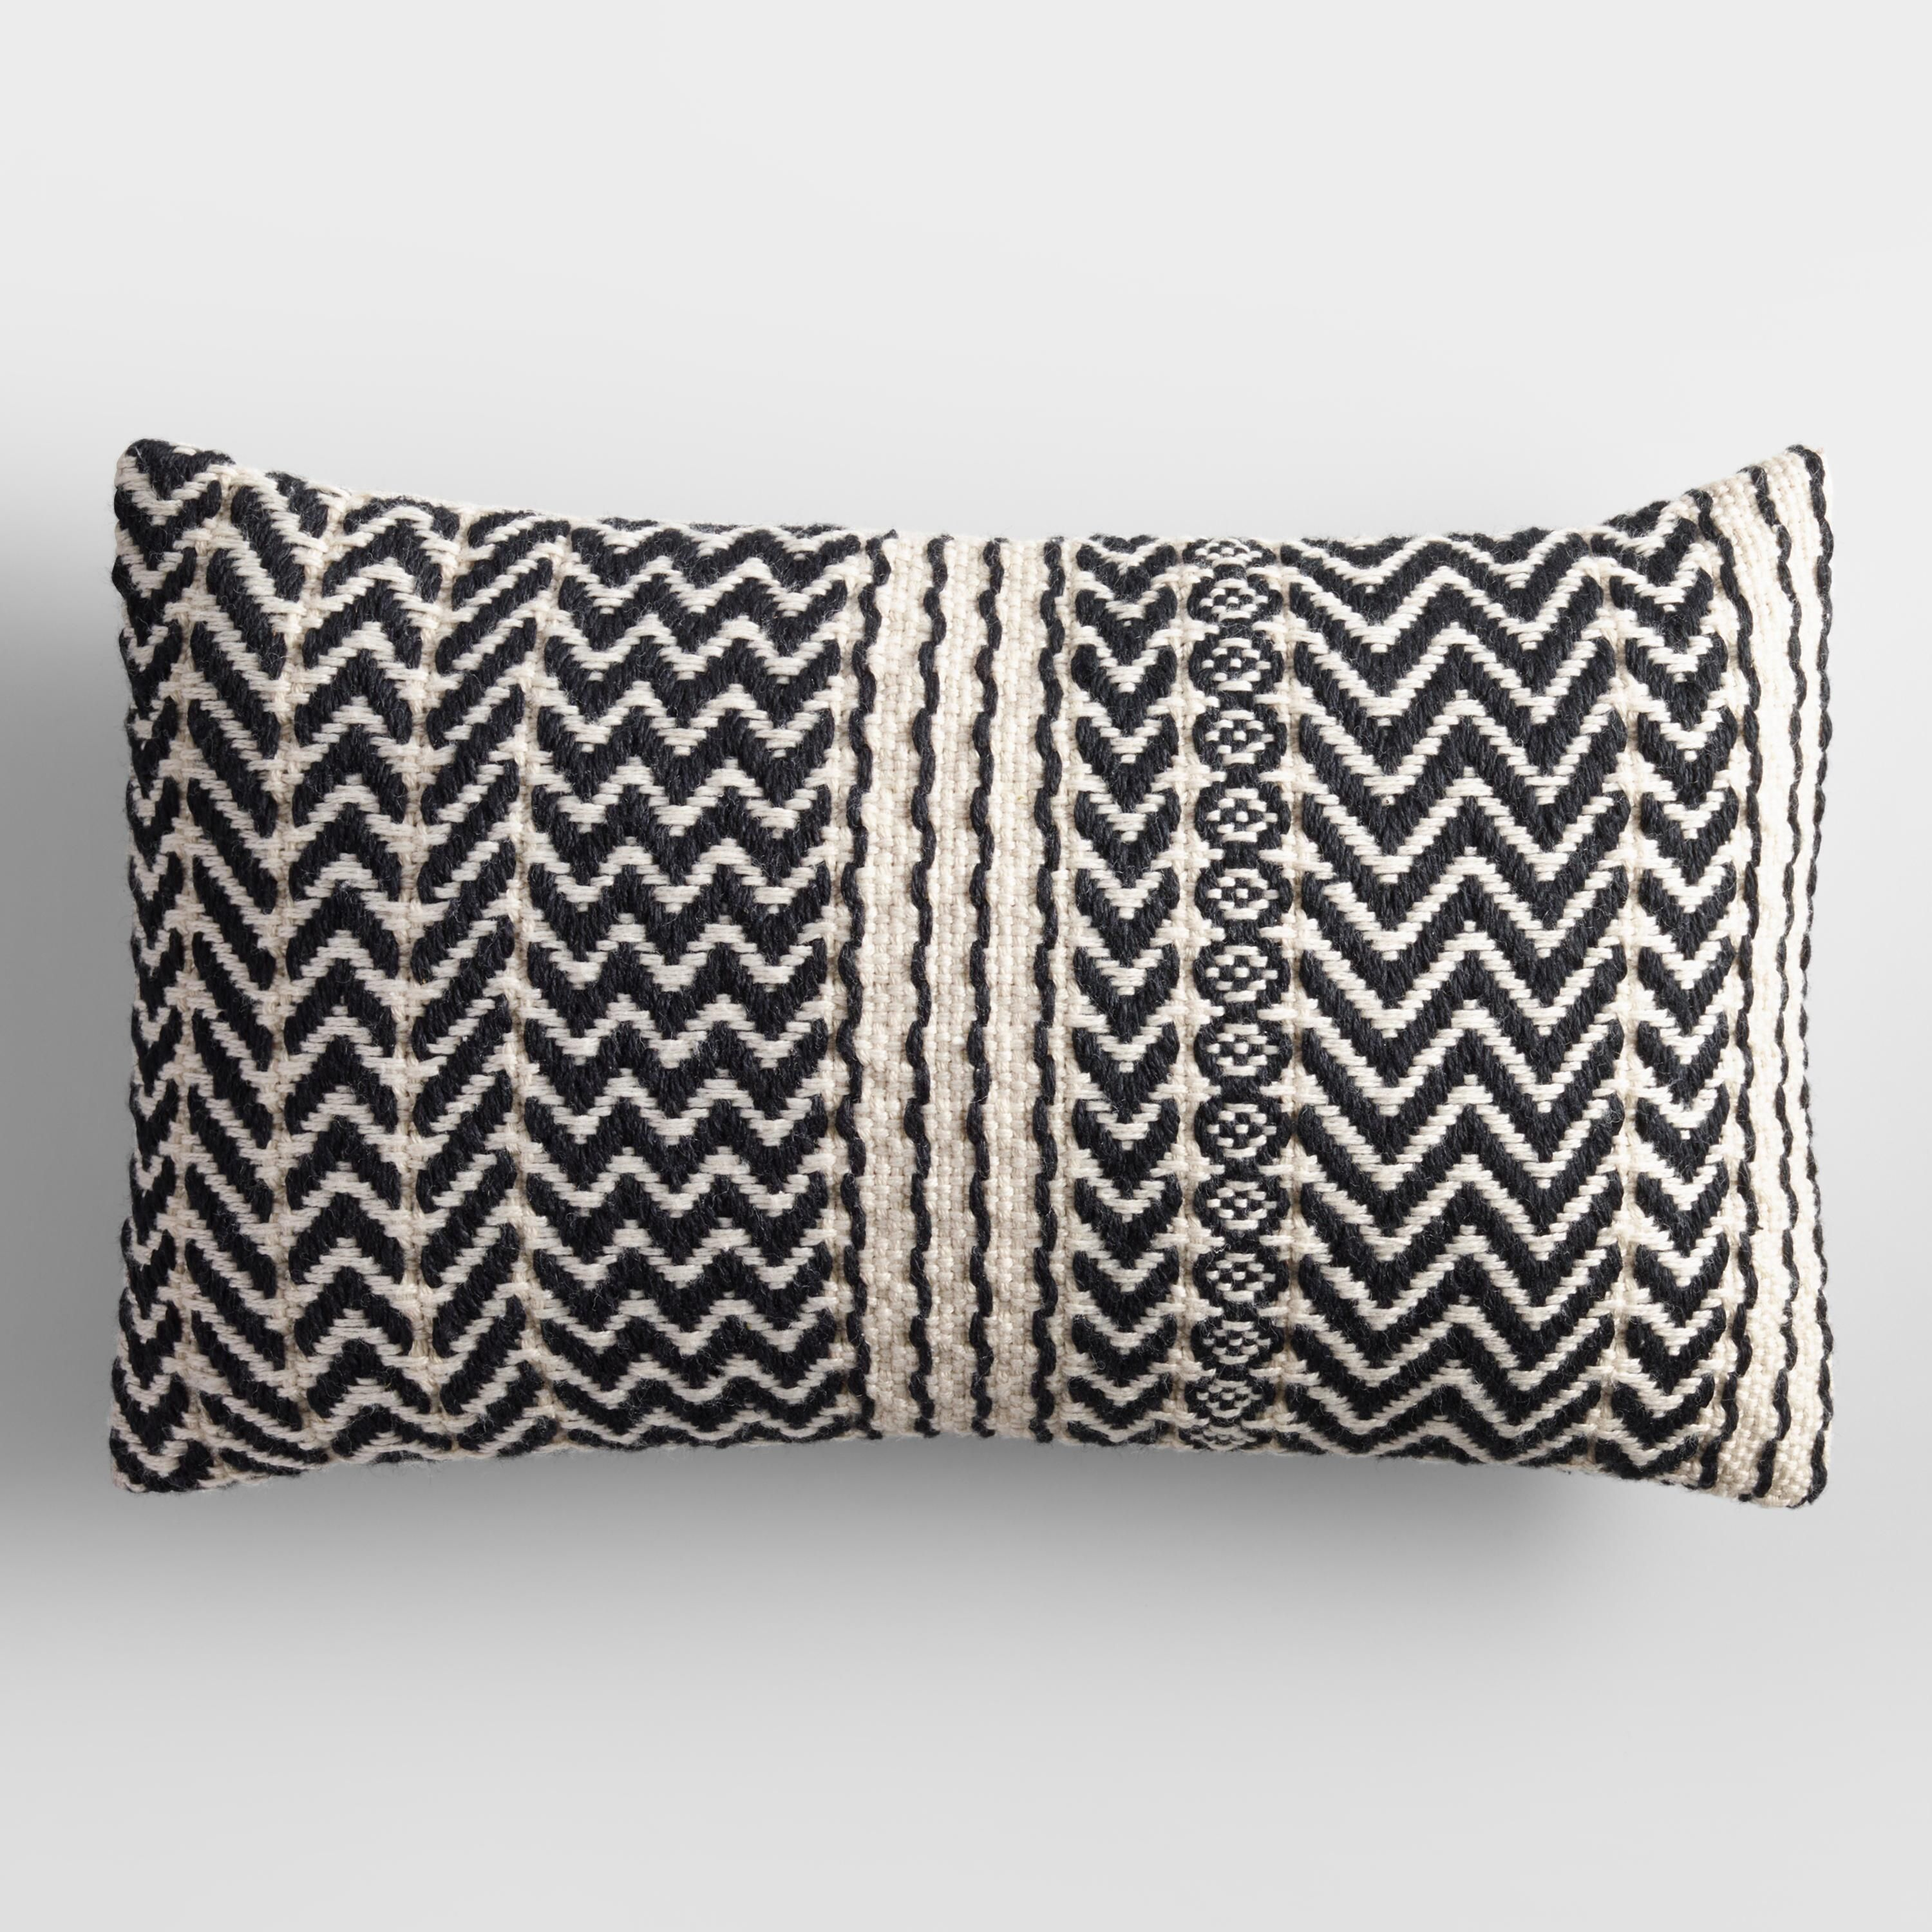 Black And Ivory Zigzag Woven Indoor Outdoor Lumbar Pillow Outdoor Throw Pillows Lumbar Pillow Outdoor Pillows